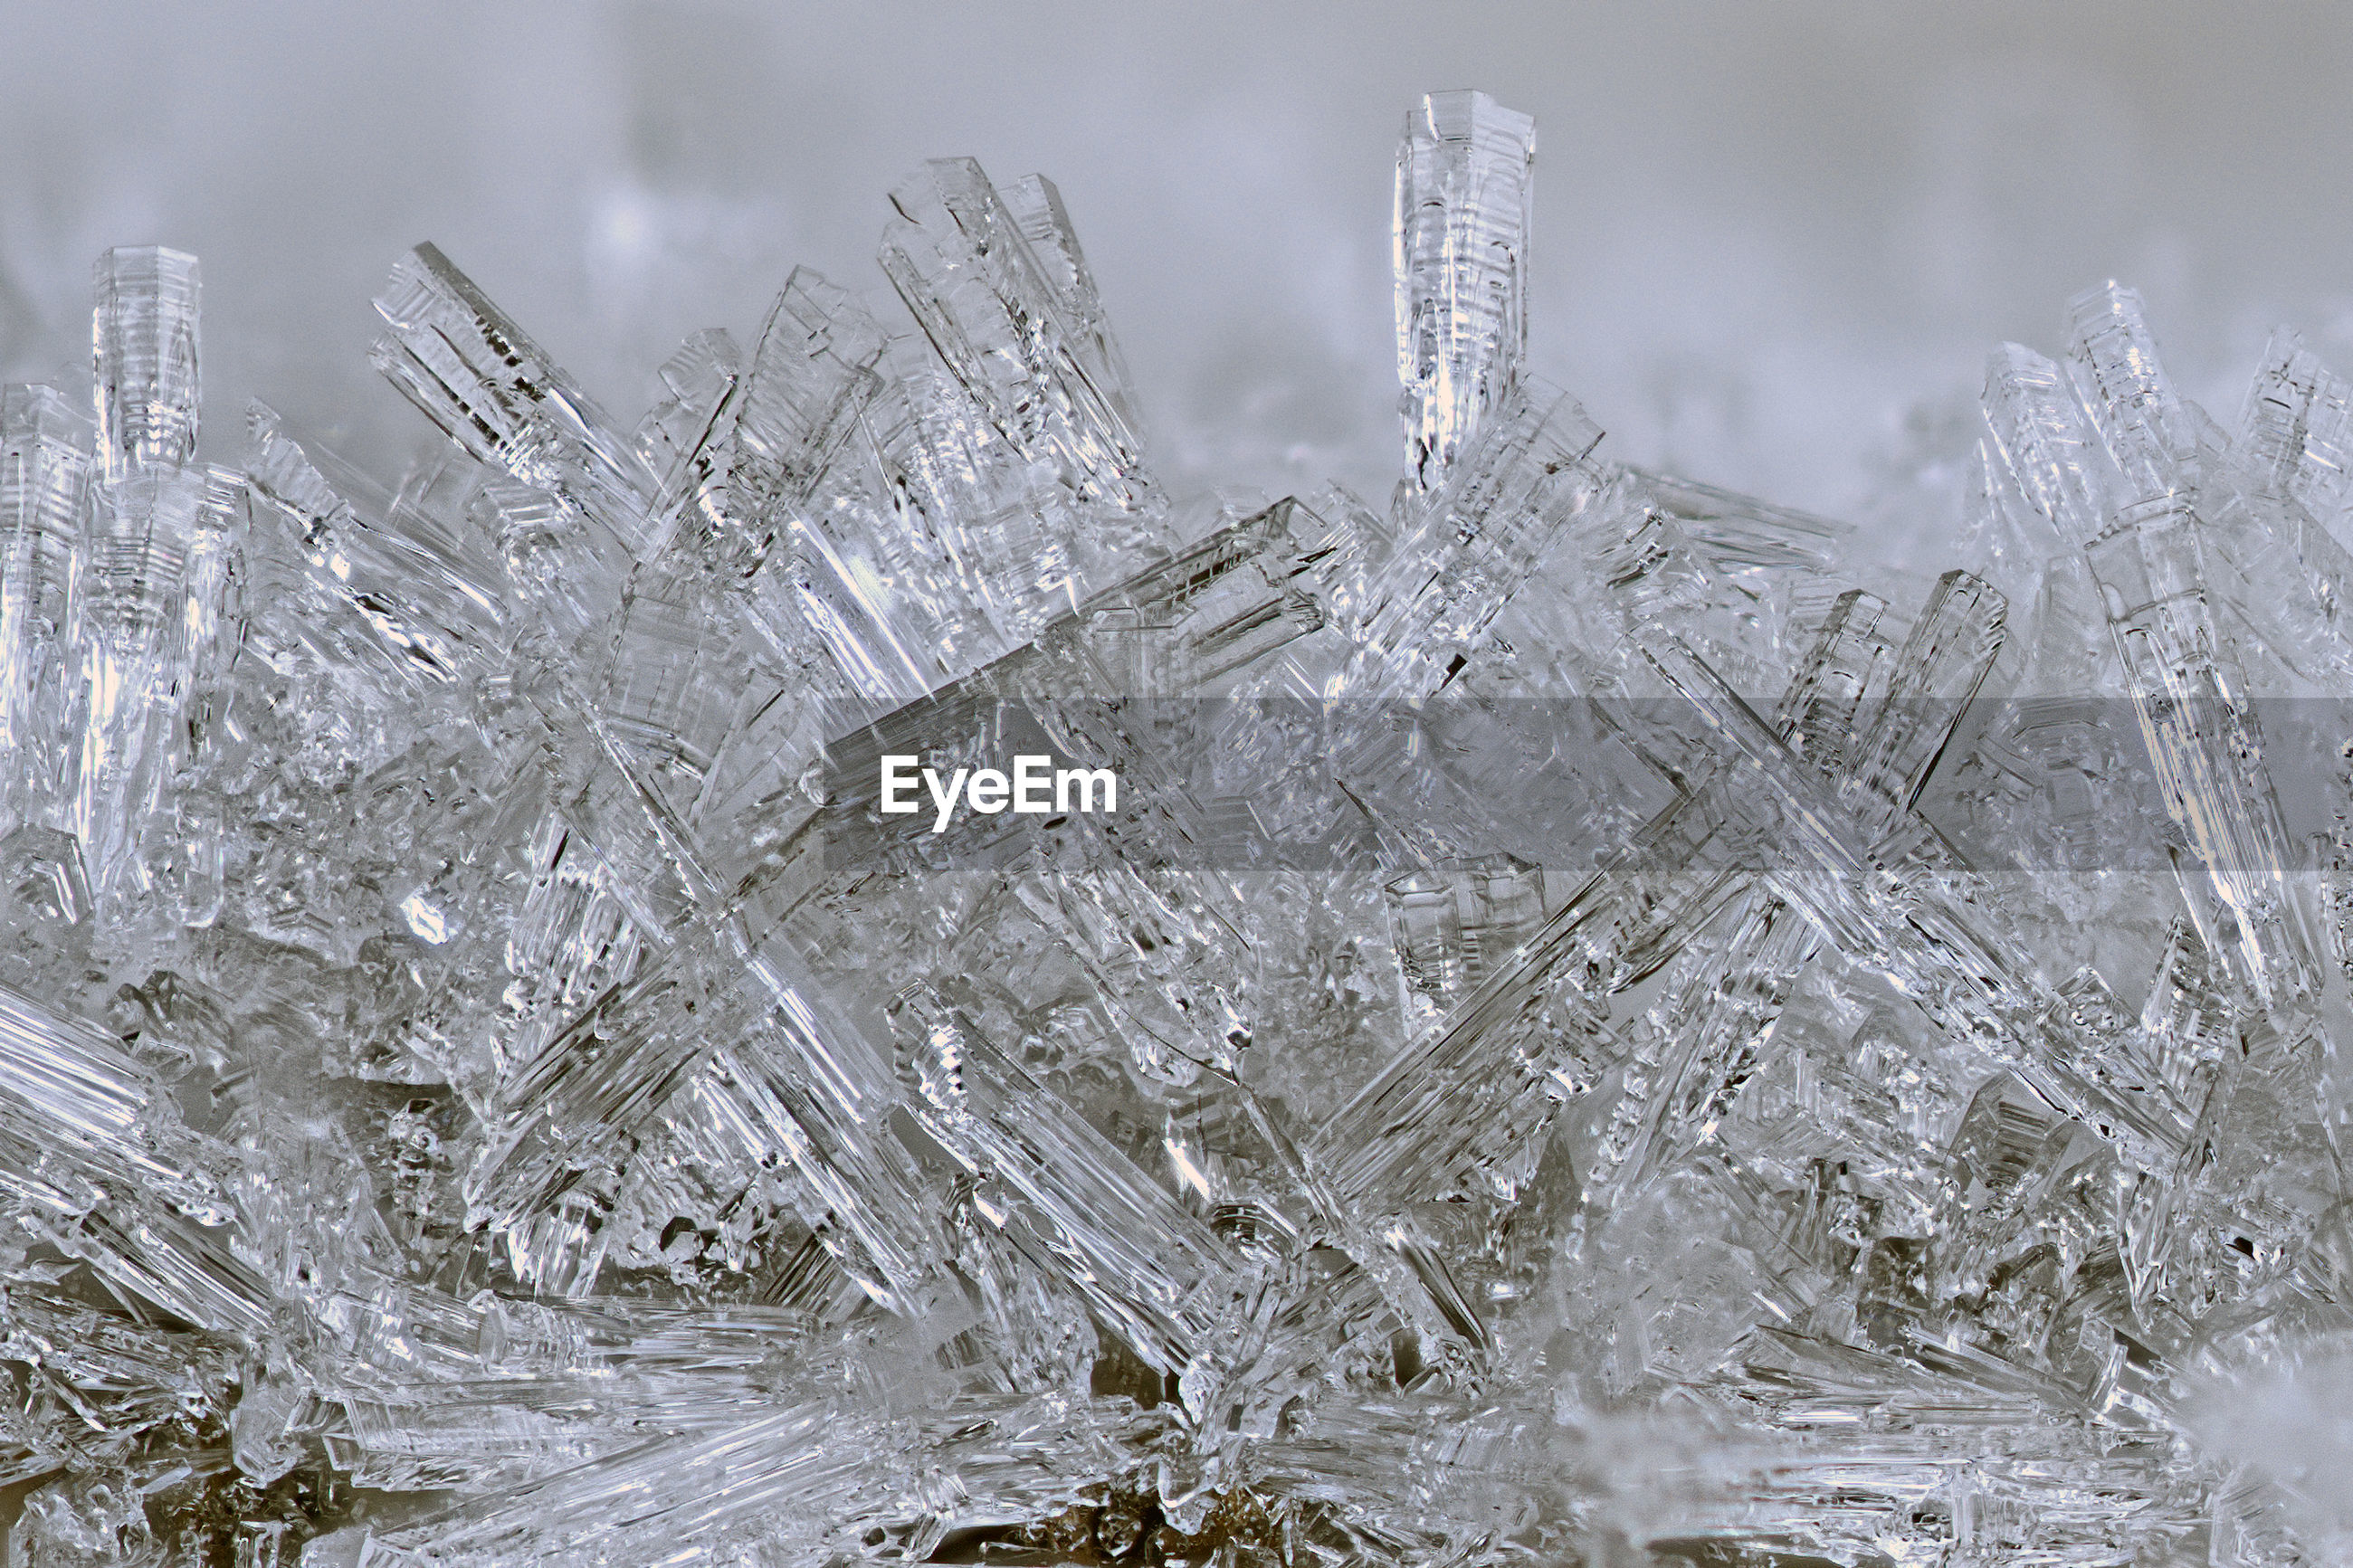 CLOSE-UP OF ICE CRYSTALS AGAINST CLOUDS